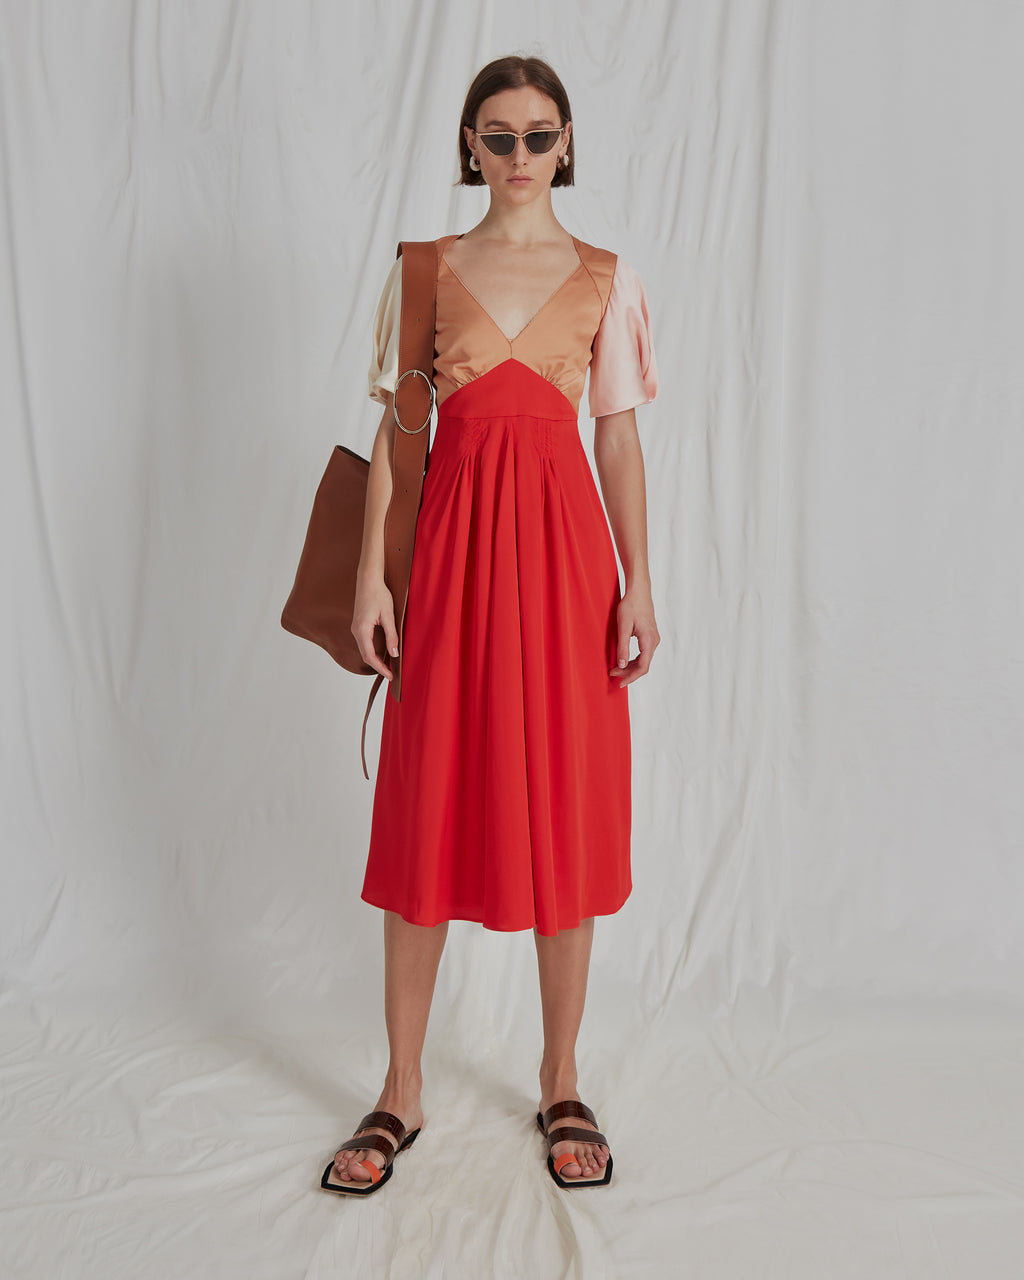 Harriet Dress Satin Red Ivory Blush